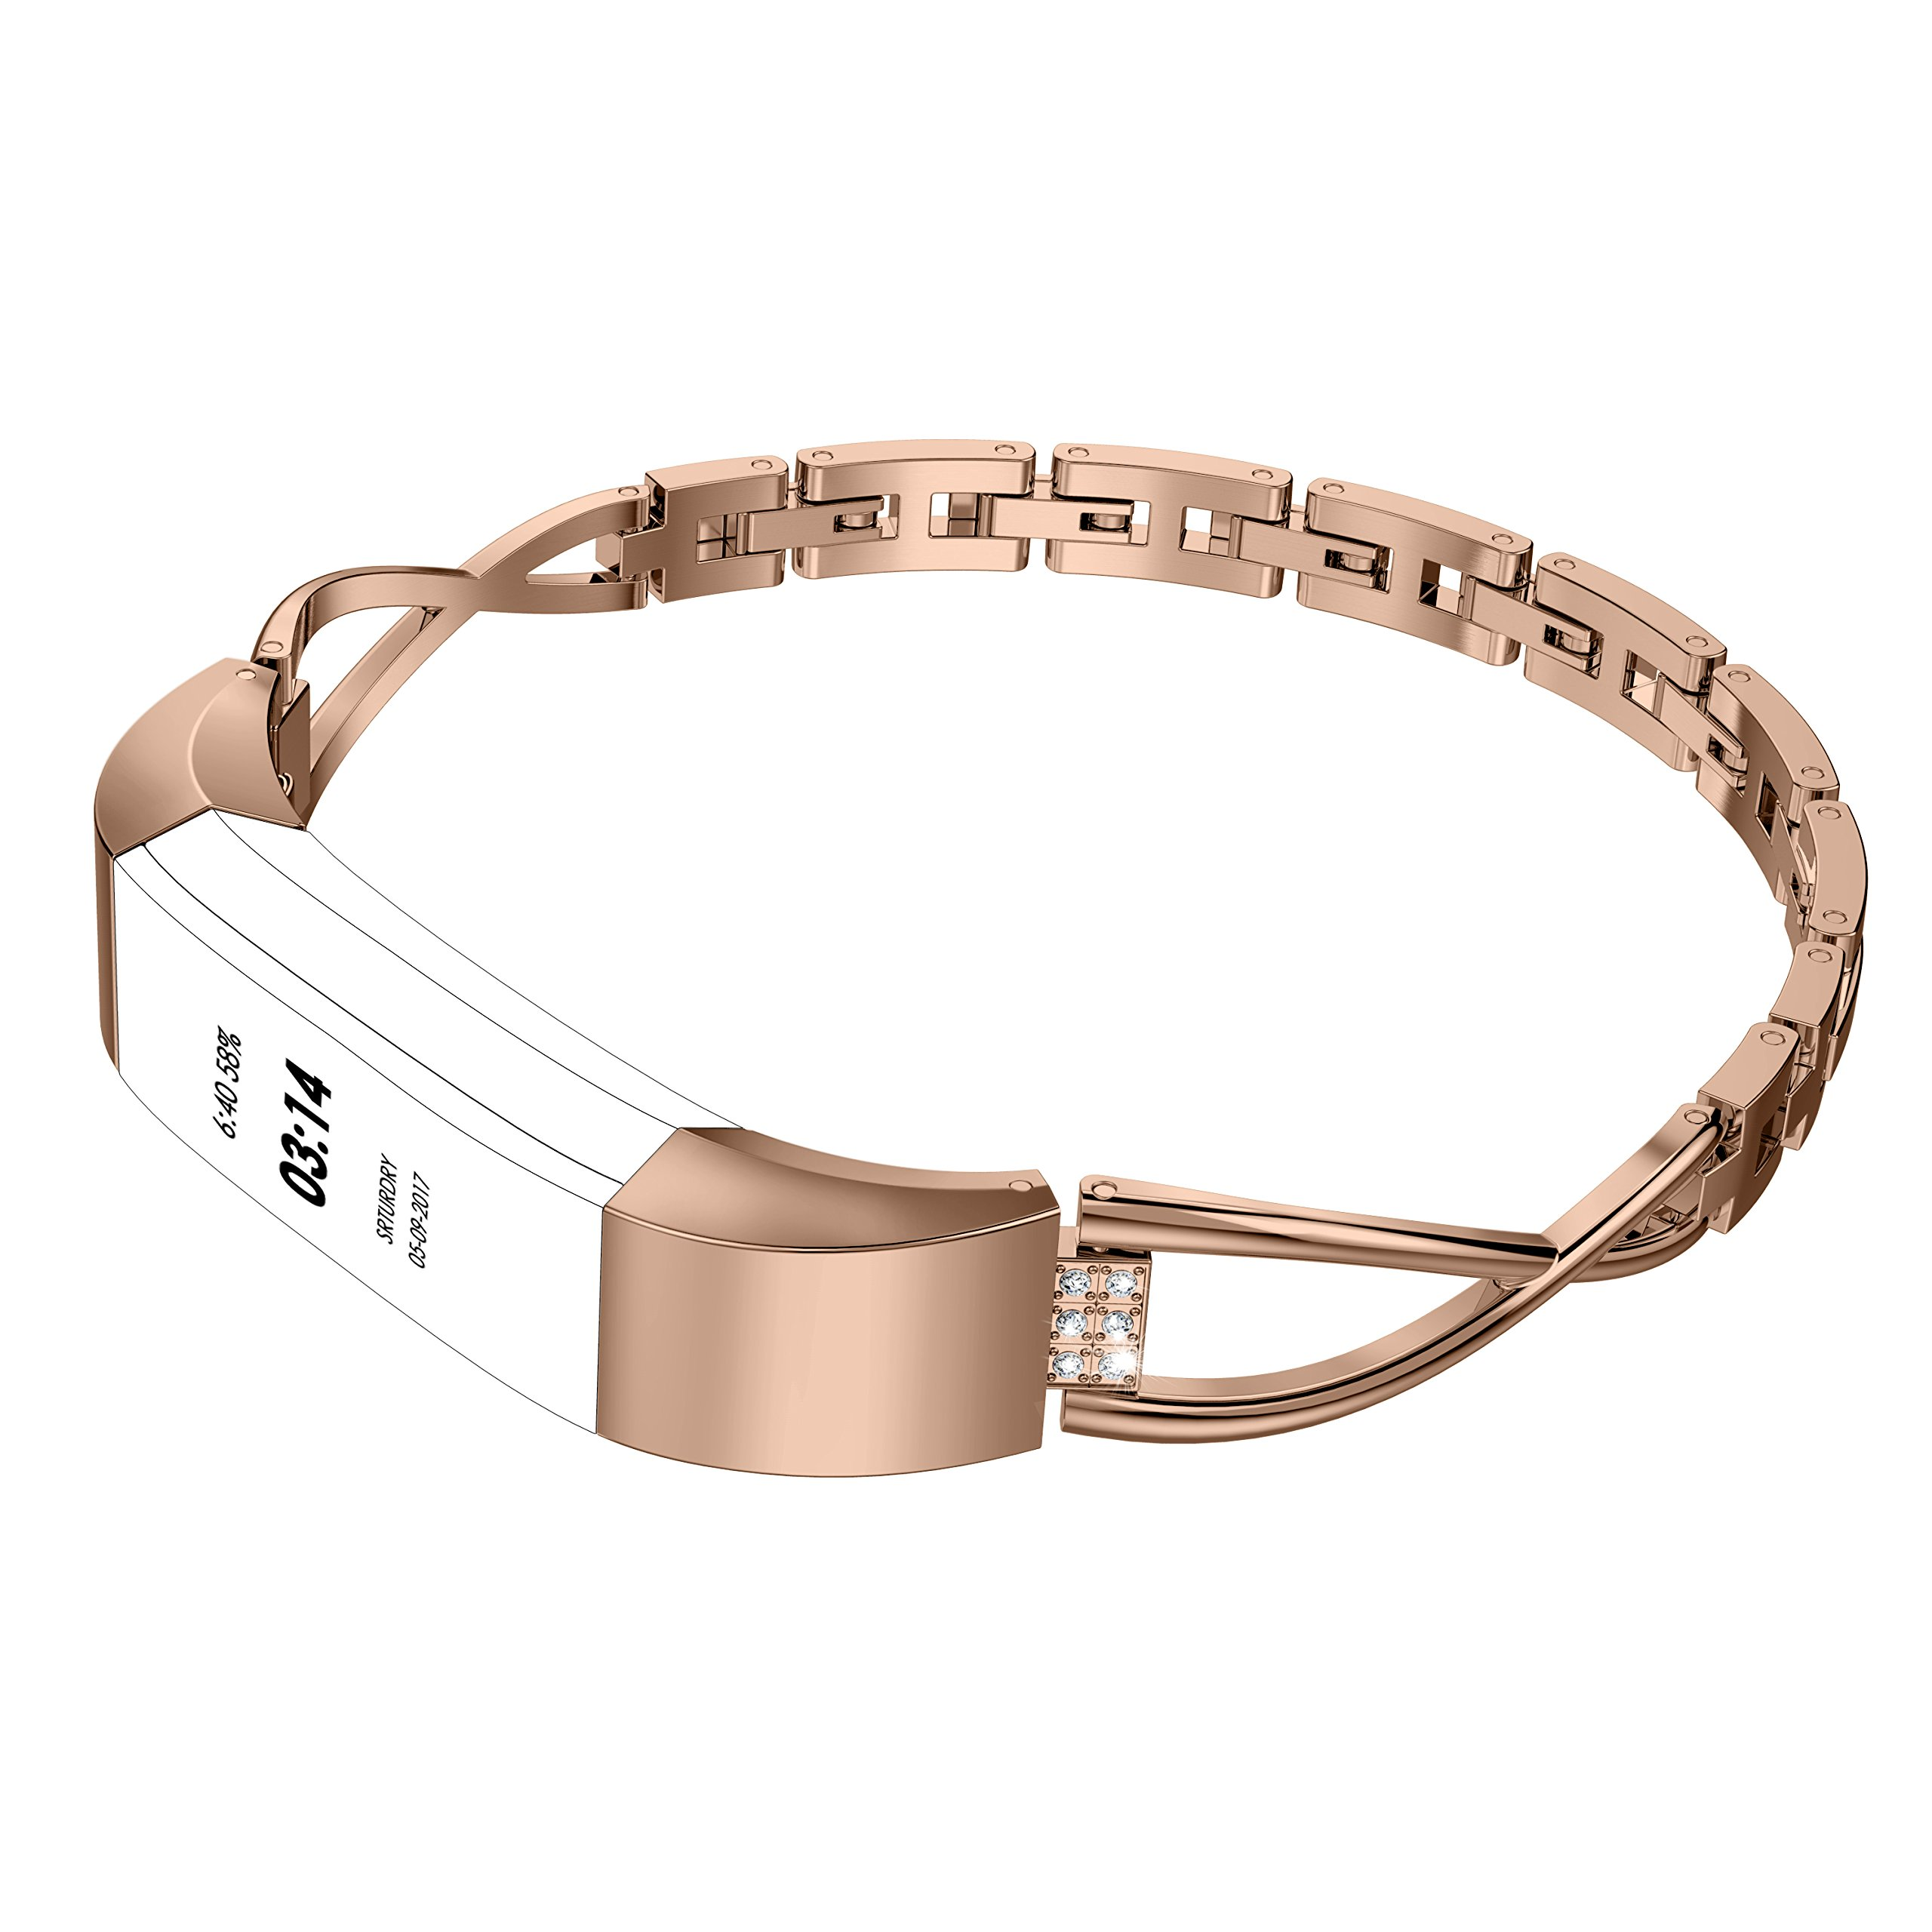 Wearlizer For Fitbit Alta Bands Small Silver Rose Gold Fitbit Alta hr Metal, Metal Replacement Bands Accessories Straps Bracelet Bangle Wrist Bands Women Small/Large